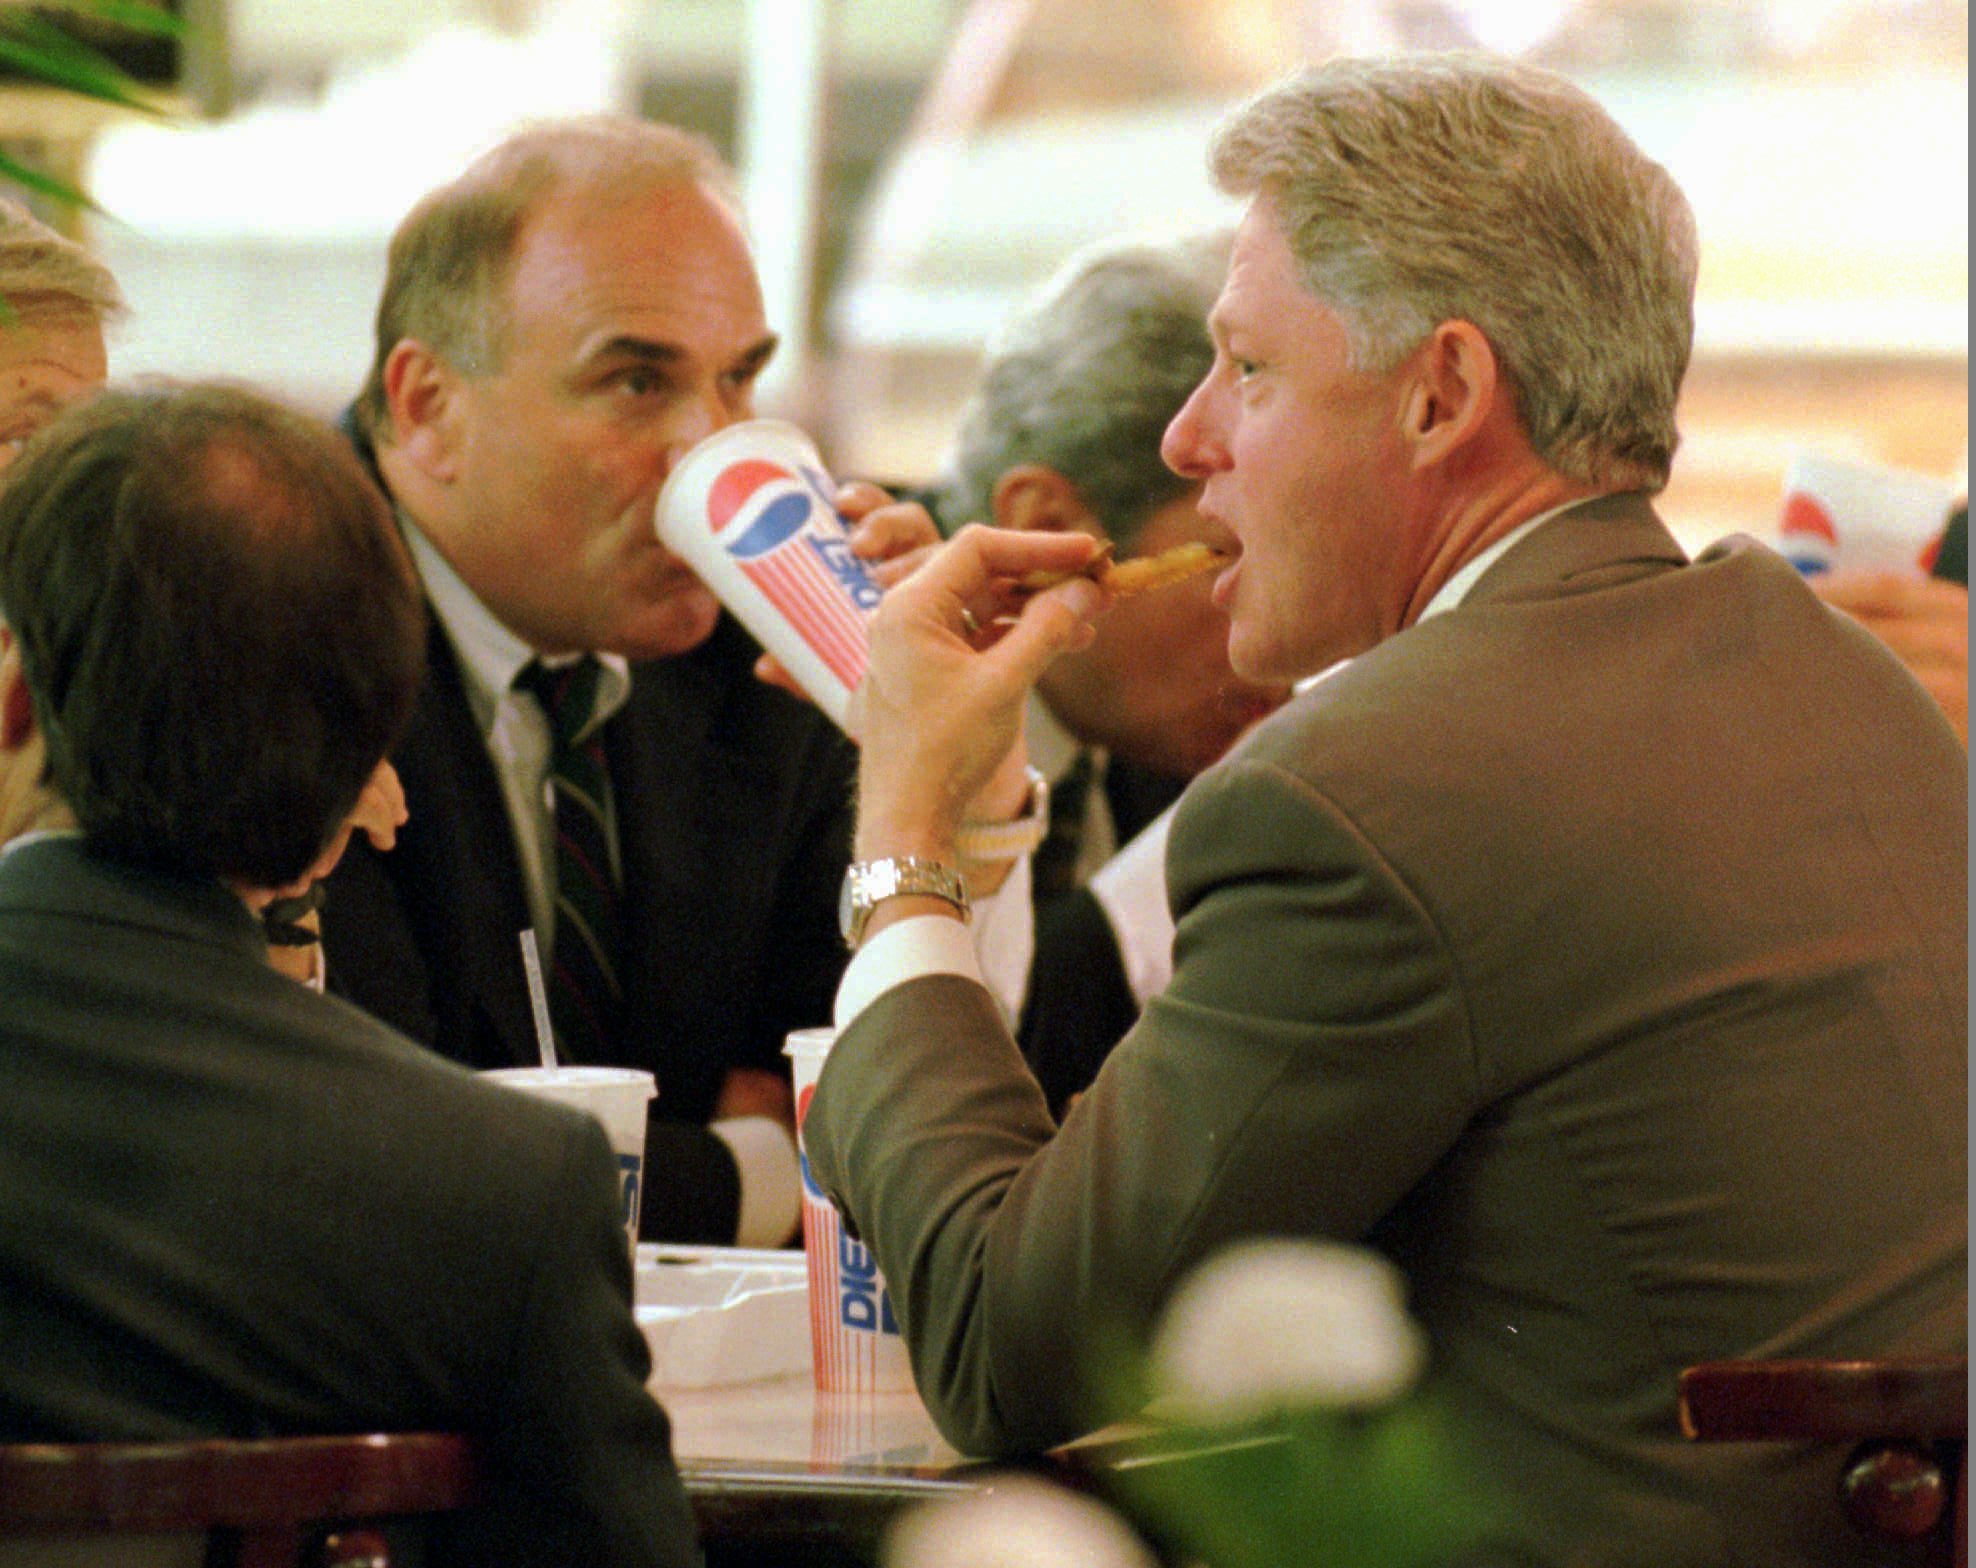 "<div class=""meta image-caption""><div class=""origin-logo origin-image ap""><span>AP</span></div><span class=""caption-text"">President Clinton and Mayor Ed Rendell at the foodcourt of the Shops at Liberty Place Monday in 1995. (AP Photo/J. Scott Applewhite) (ASSOCIATED PRESS)</span></div>"